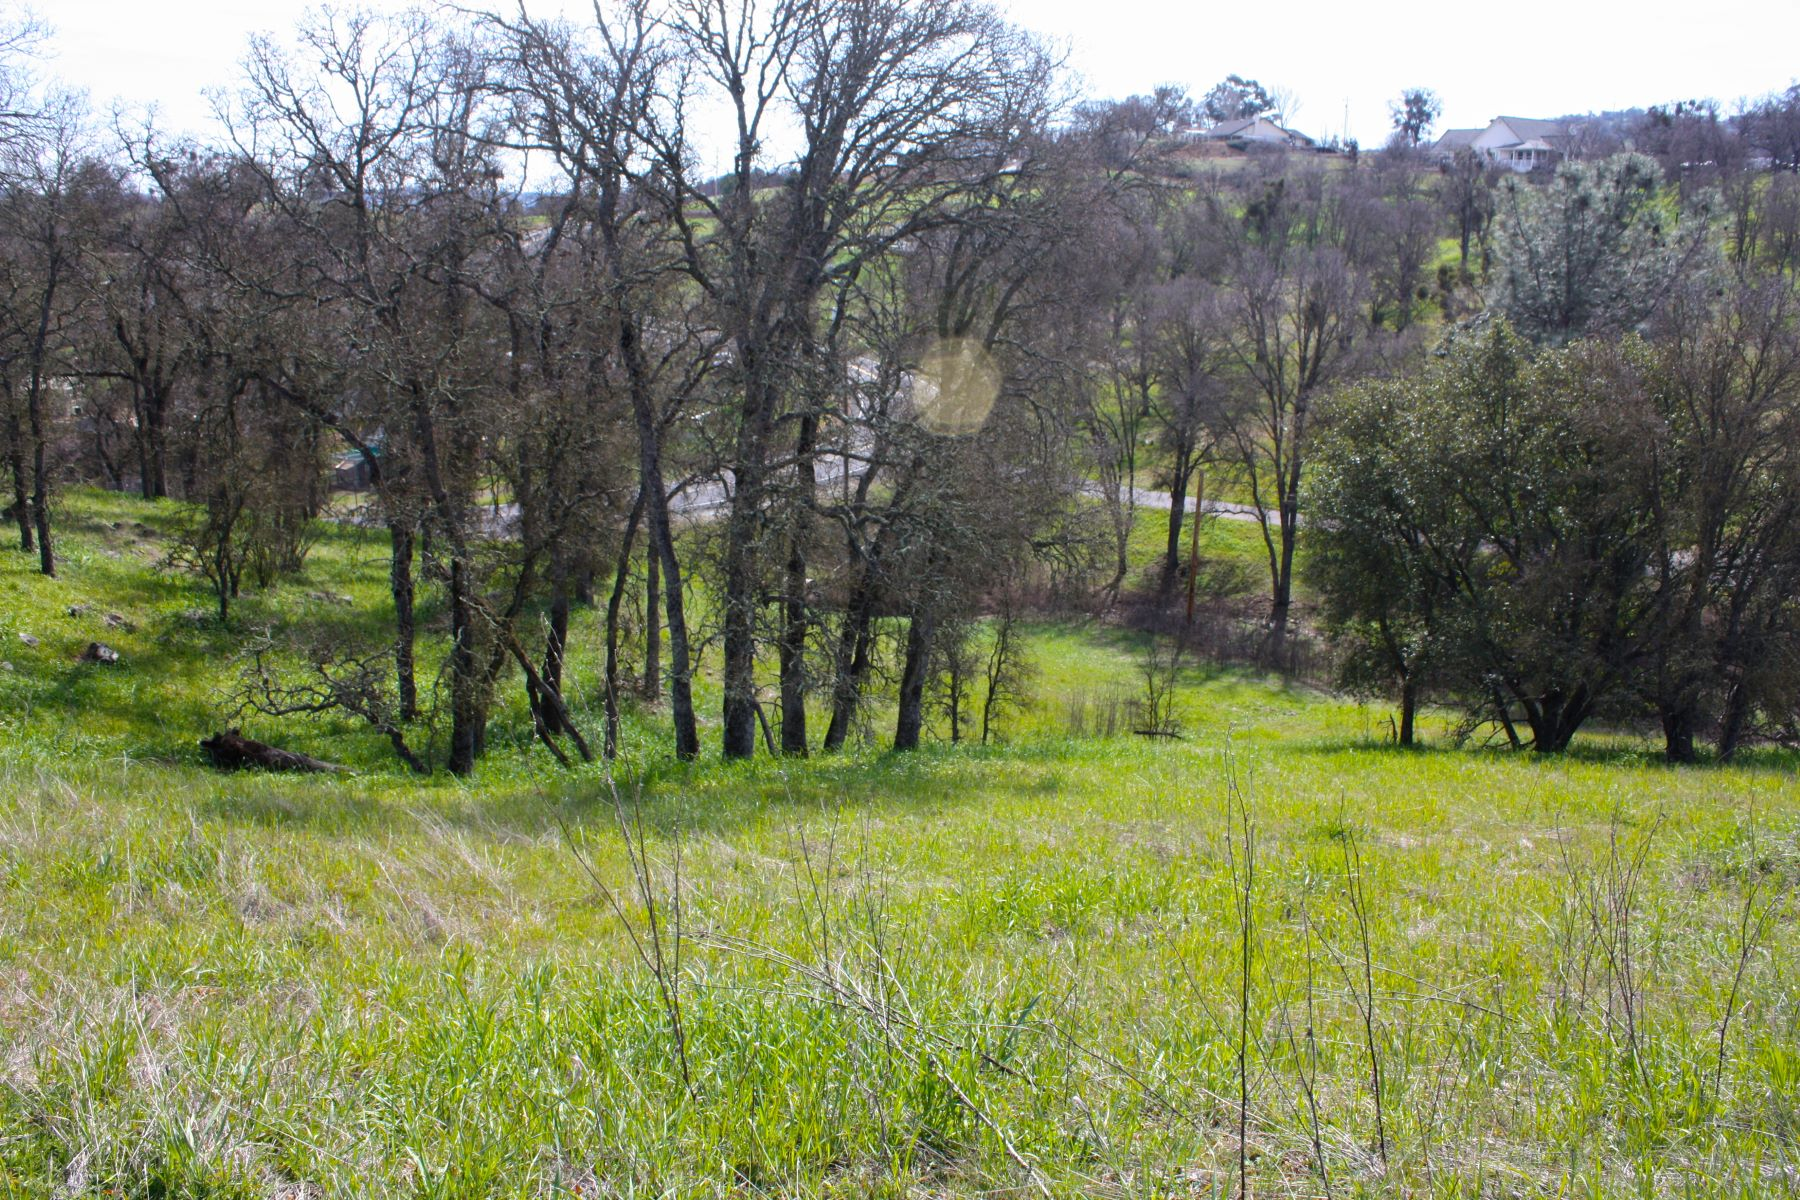 Land for Sale at Rolling Hill View Lot 1795 Choctaw Road Copperopolis, California 95228 United States